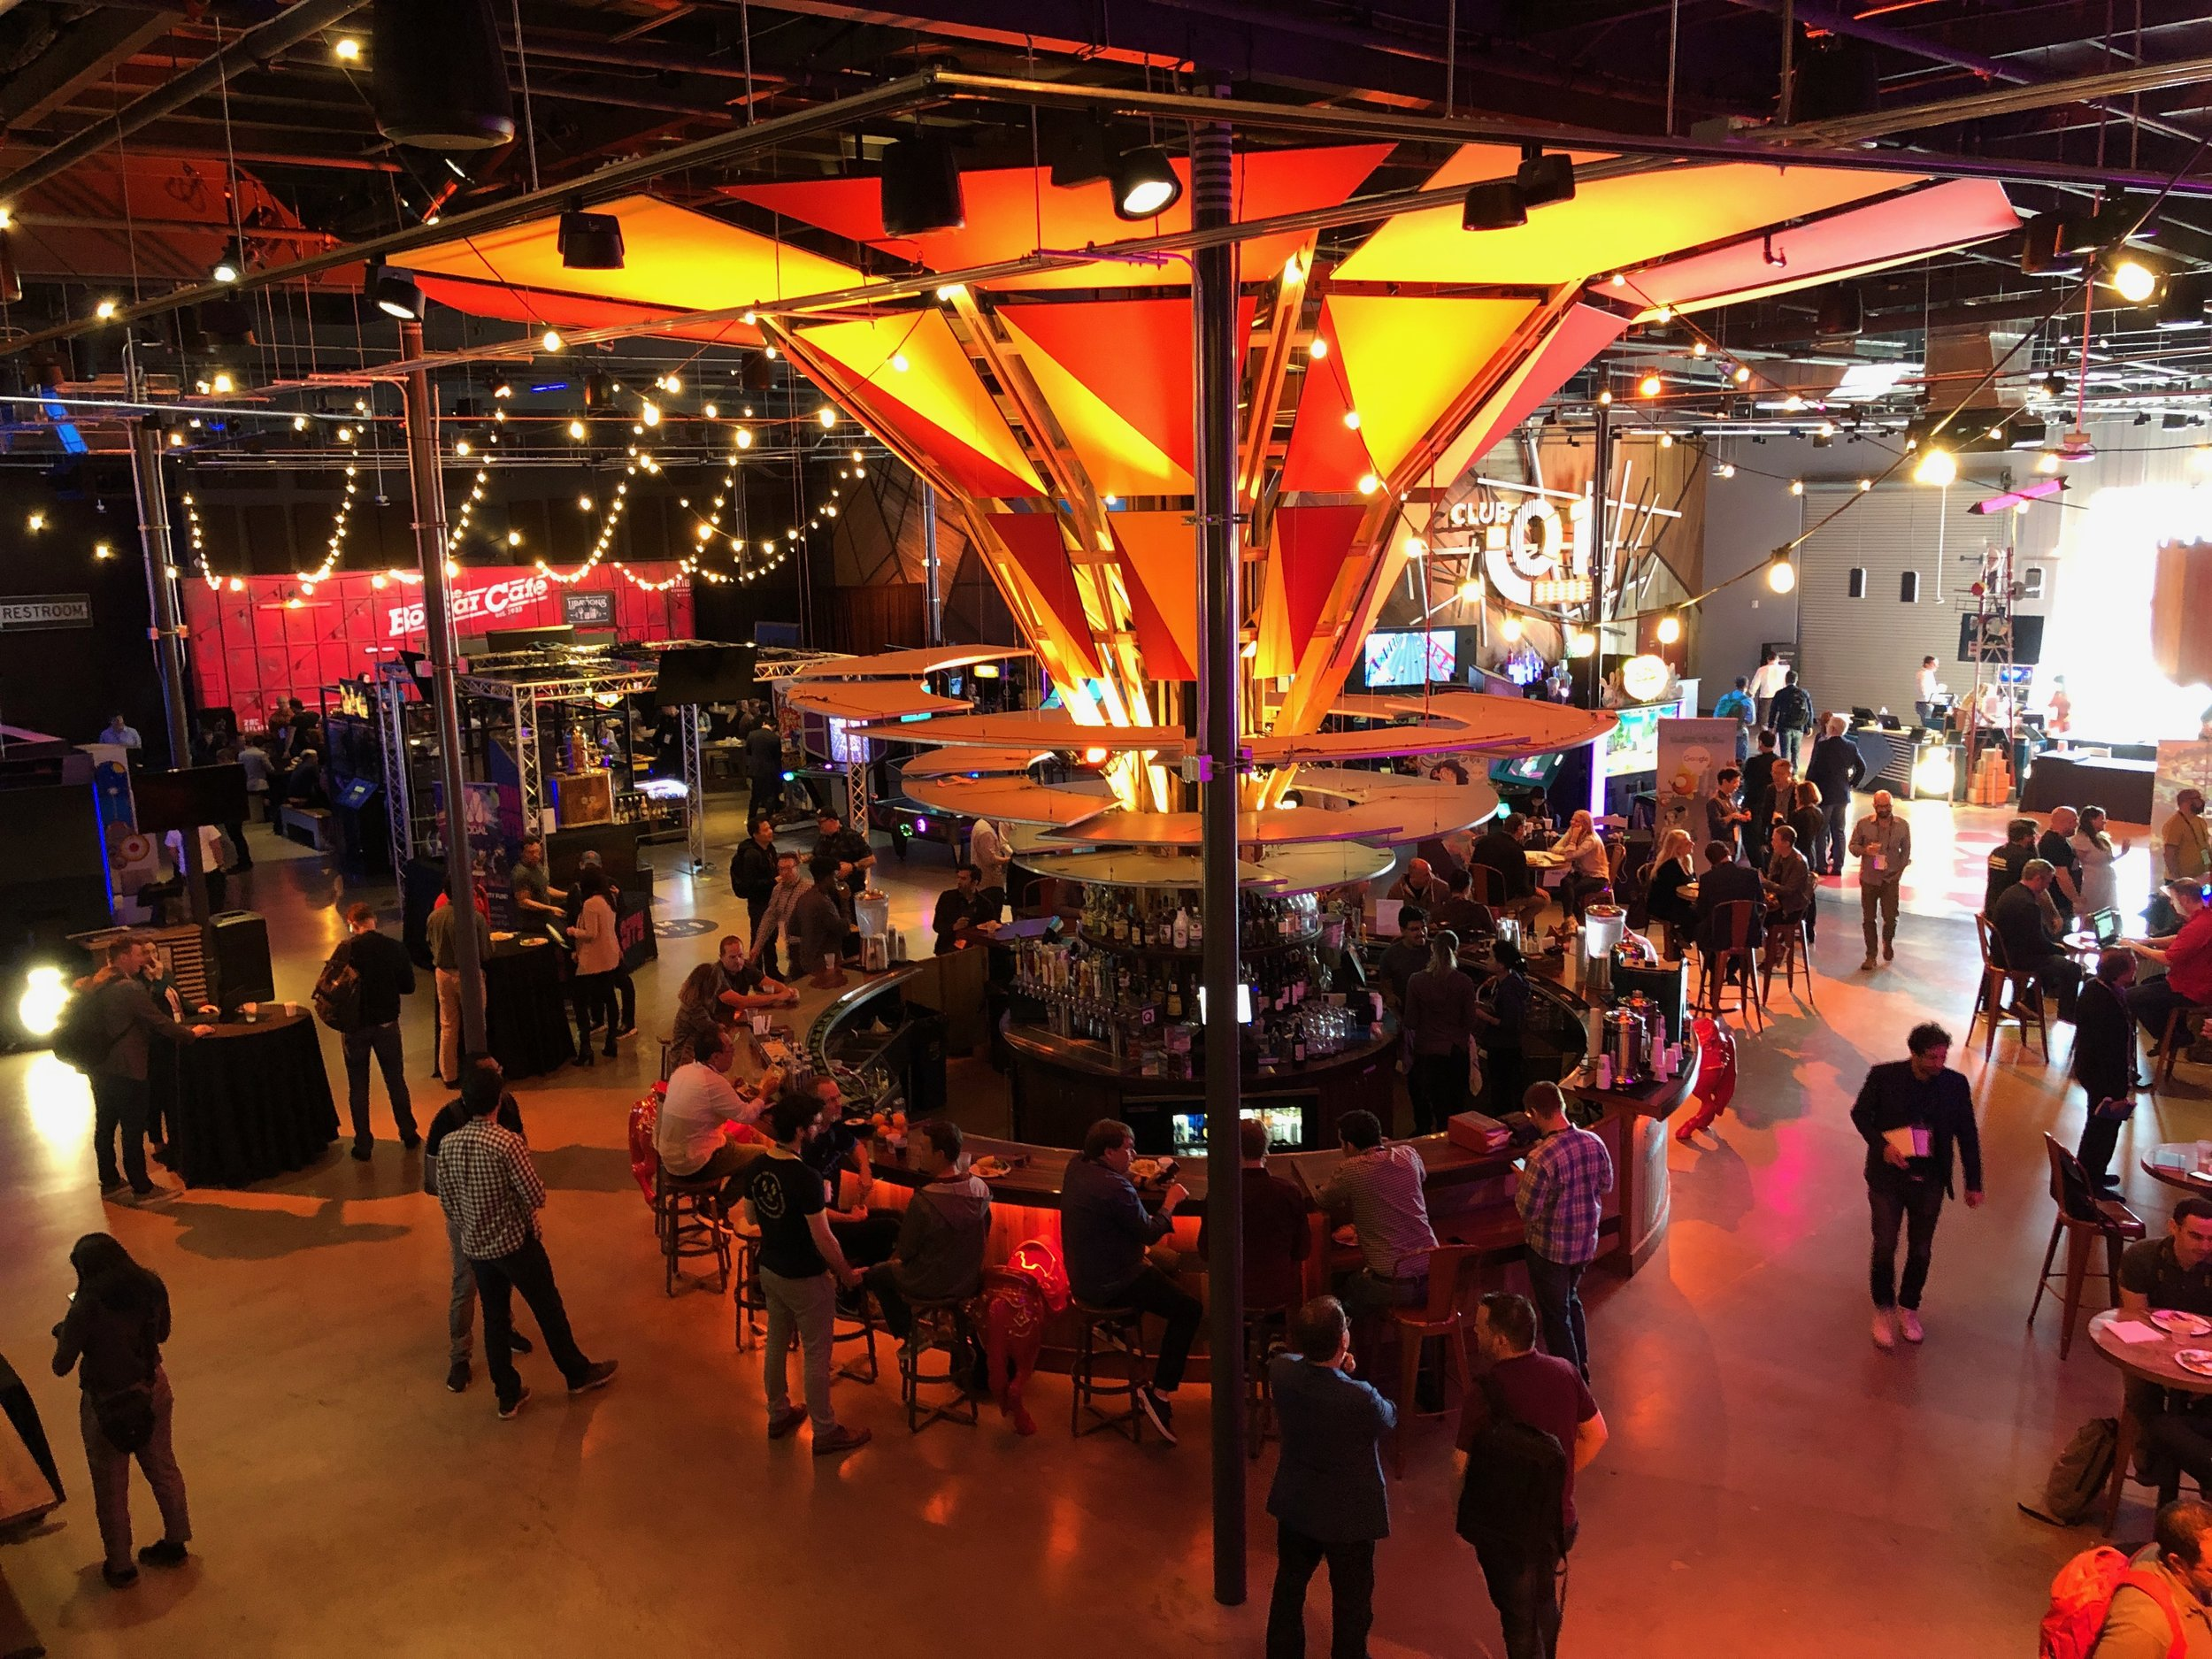 """World's First Micro-Amusement Park"" as this year's venue for GamesBeat 2019"